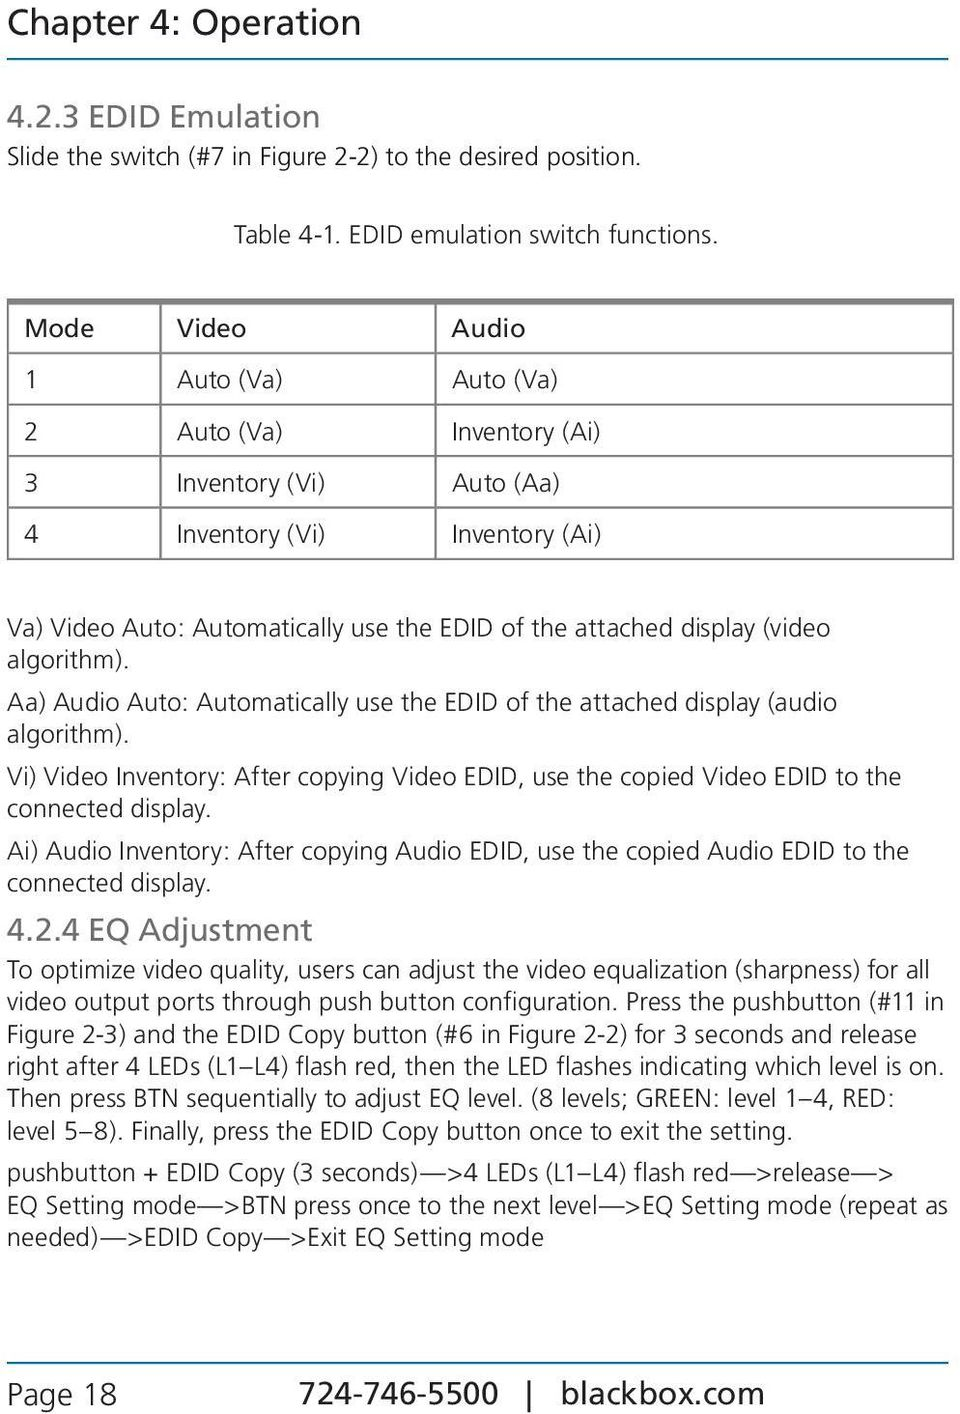 algorithm). Aa) Audio Auto: Automatically use the EDID of the attached display (audio algorithm). Vi) Video Inventory: After copying Video EDID, use the copied Video EDID to the connected display.